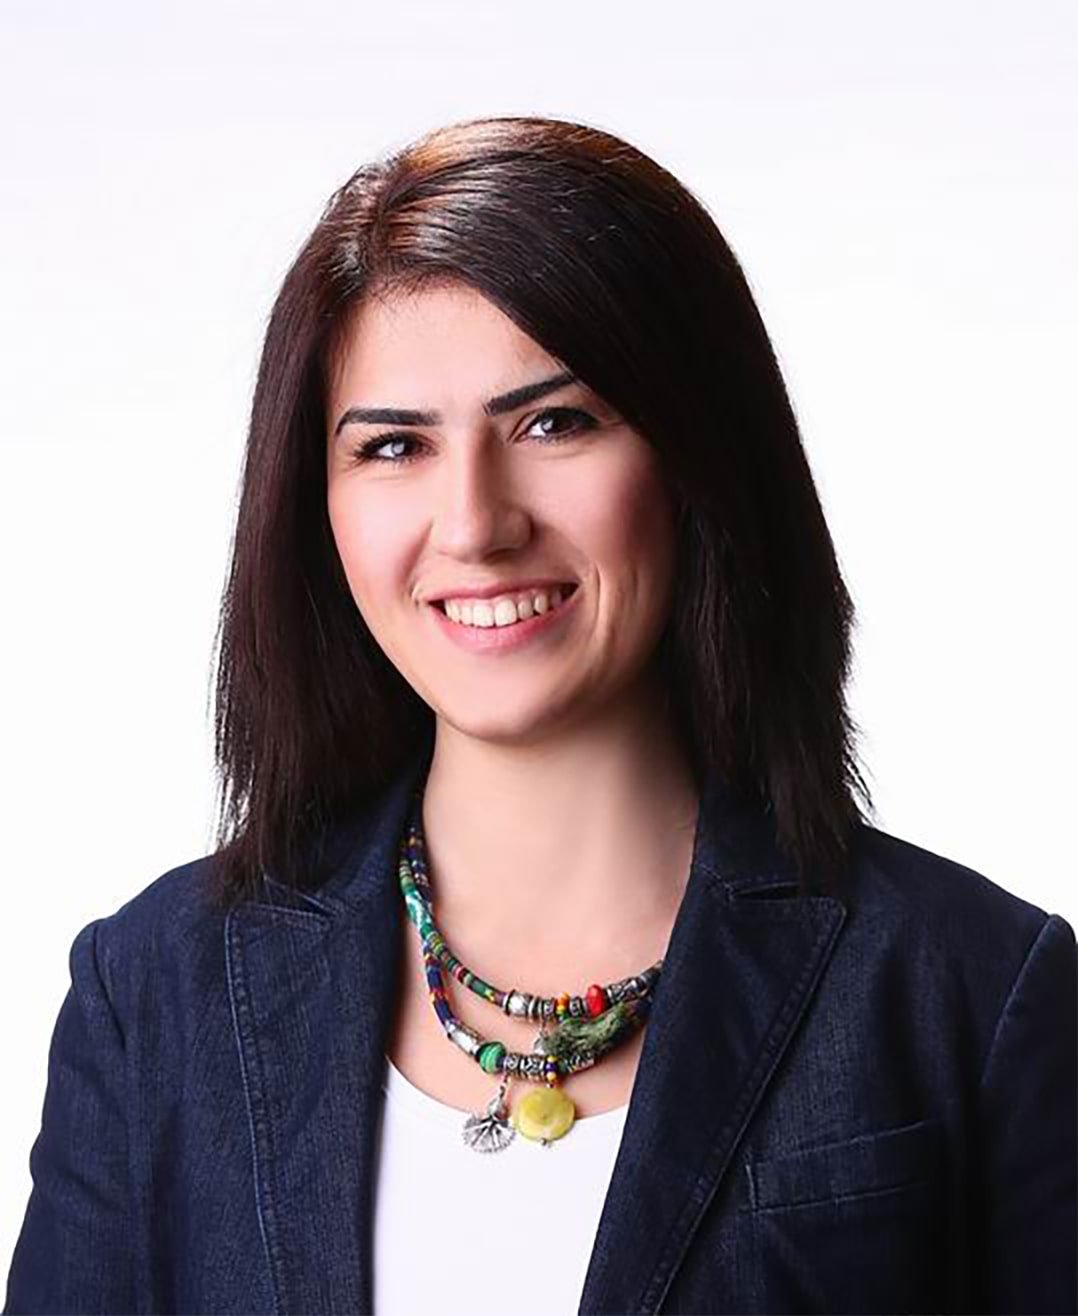 Fatma Zeynep Temel is a postdoctoral researcher at the Robotics Institute of Carnegie Mellon. (Courtesy of WEF)